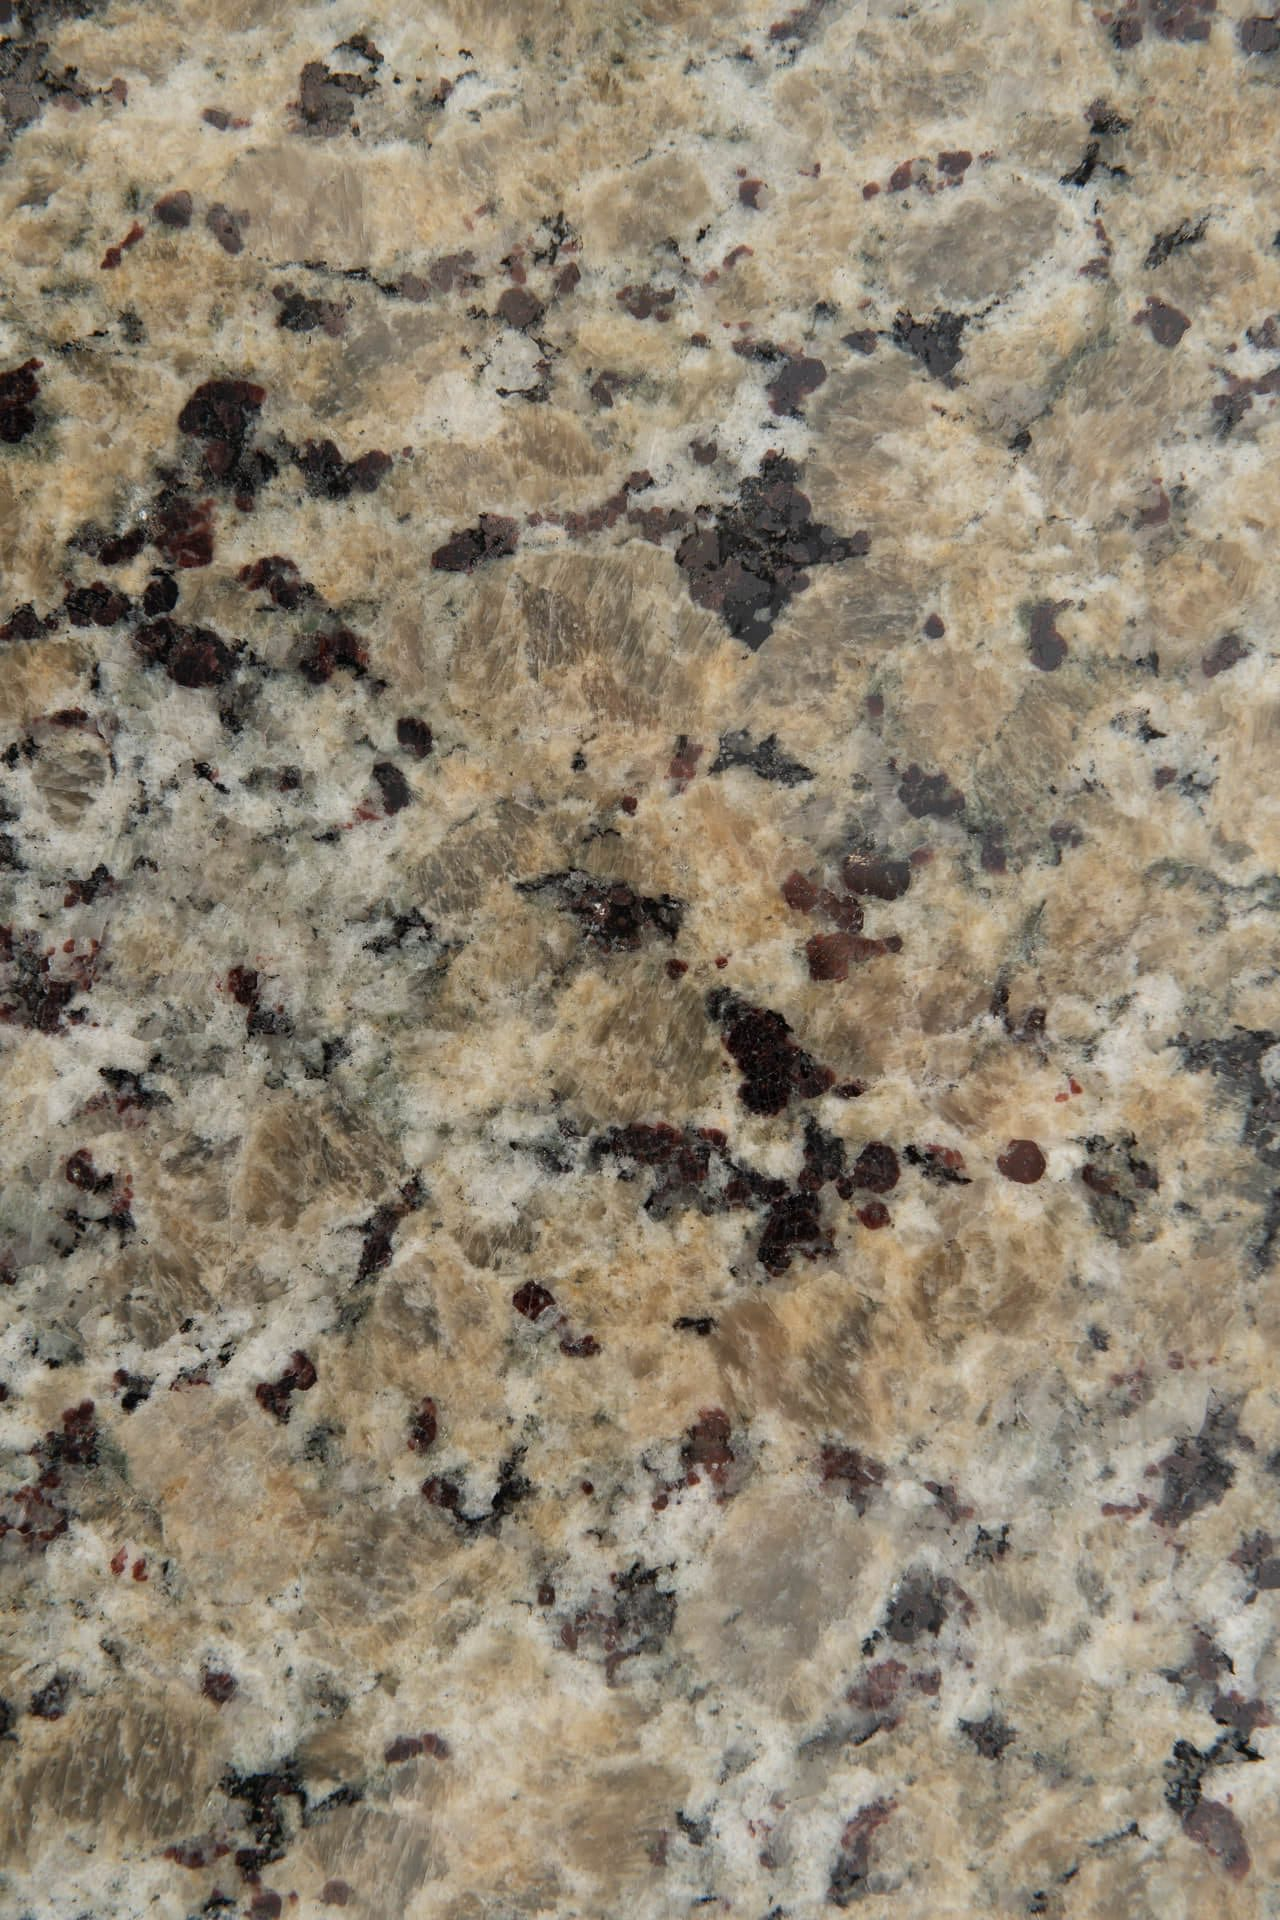 beige butterfly cu countertop - by Magnolia Countertops. A Countertop fabricator of Granite Countertops, Marble Countertops, and Quartz Countertops in Cookeville and Crossville TN.